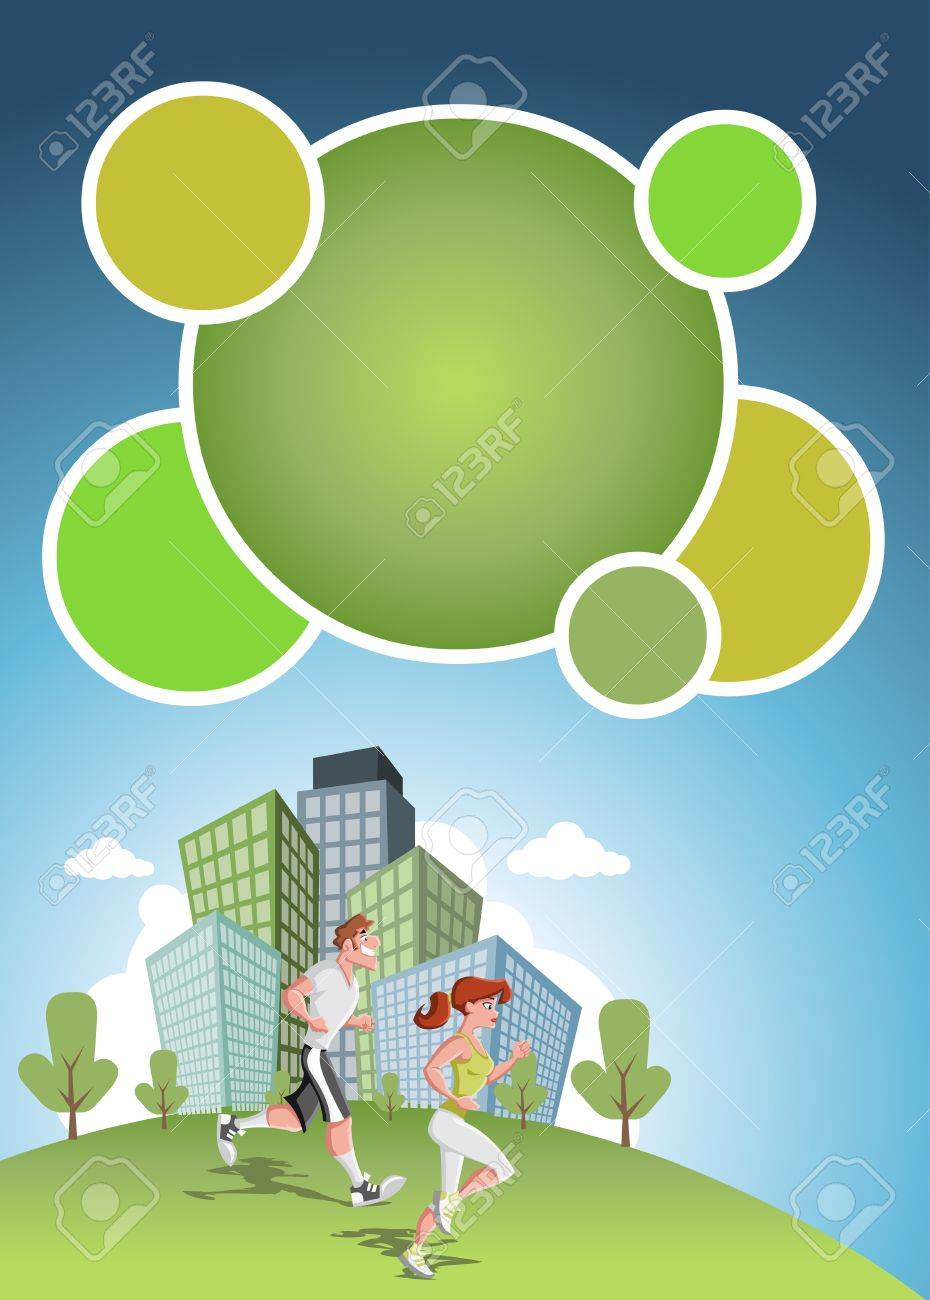 template for advertising brochure with couple jogging in the city park Stock Vector - 16552337